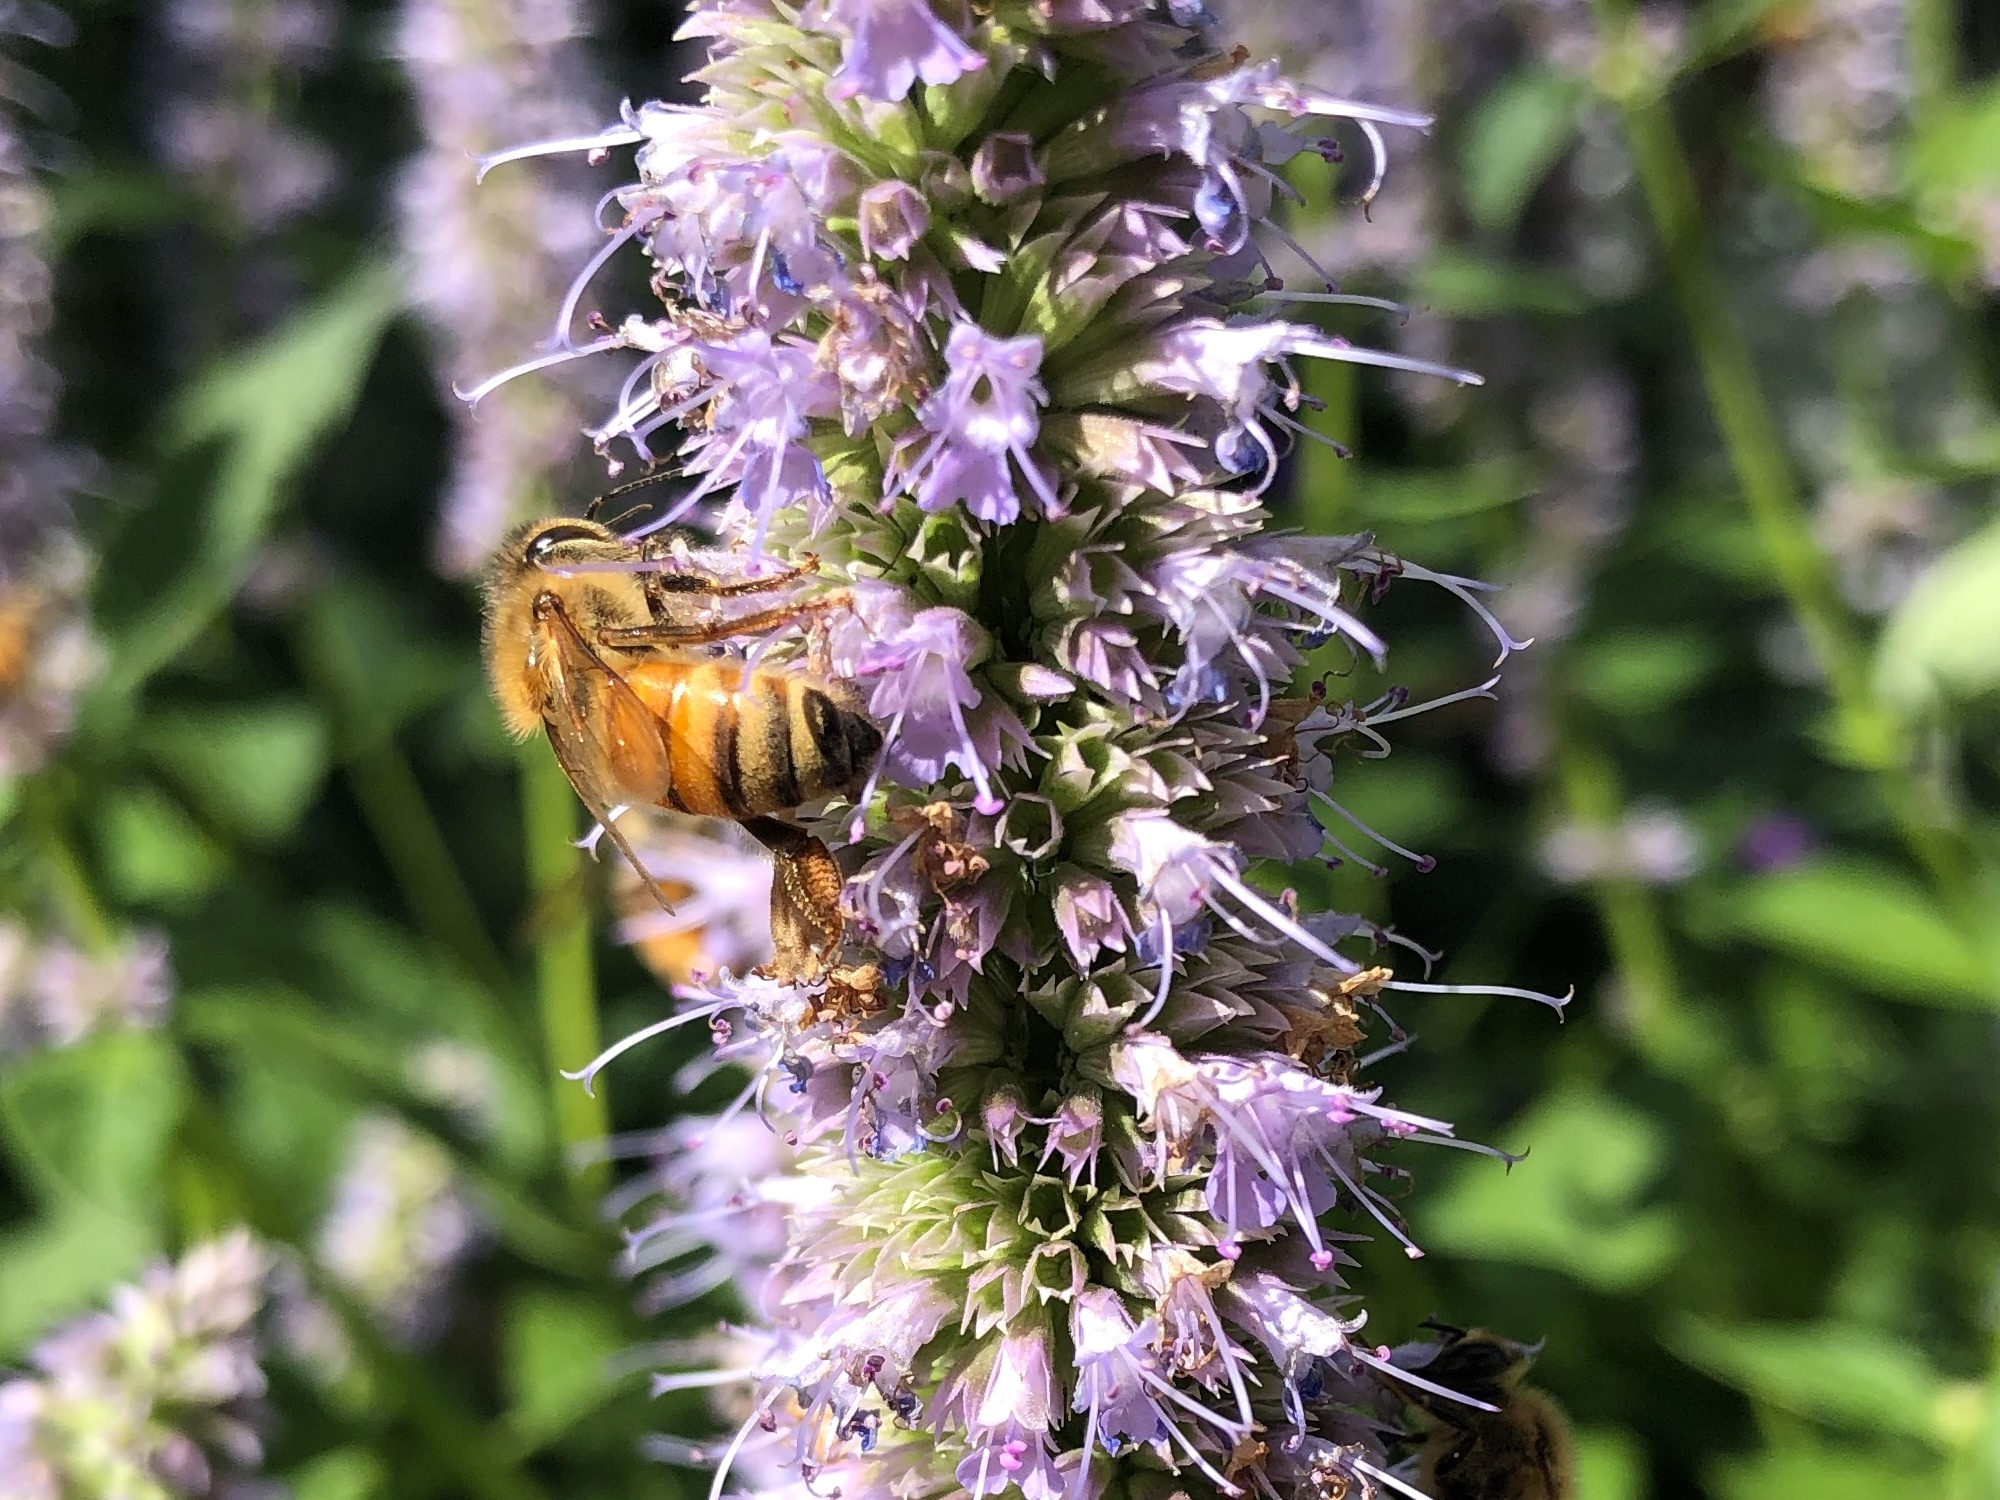 Honeybee on Hyssop on August 18, 2020.